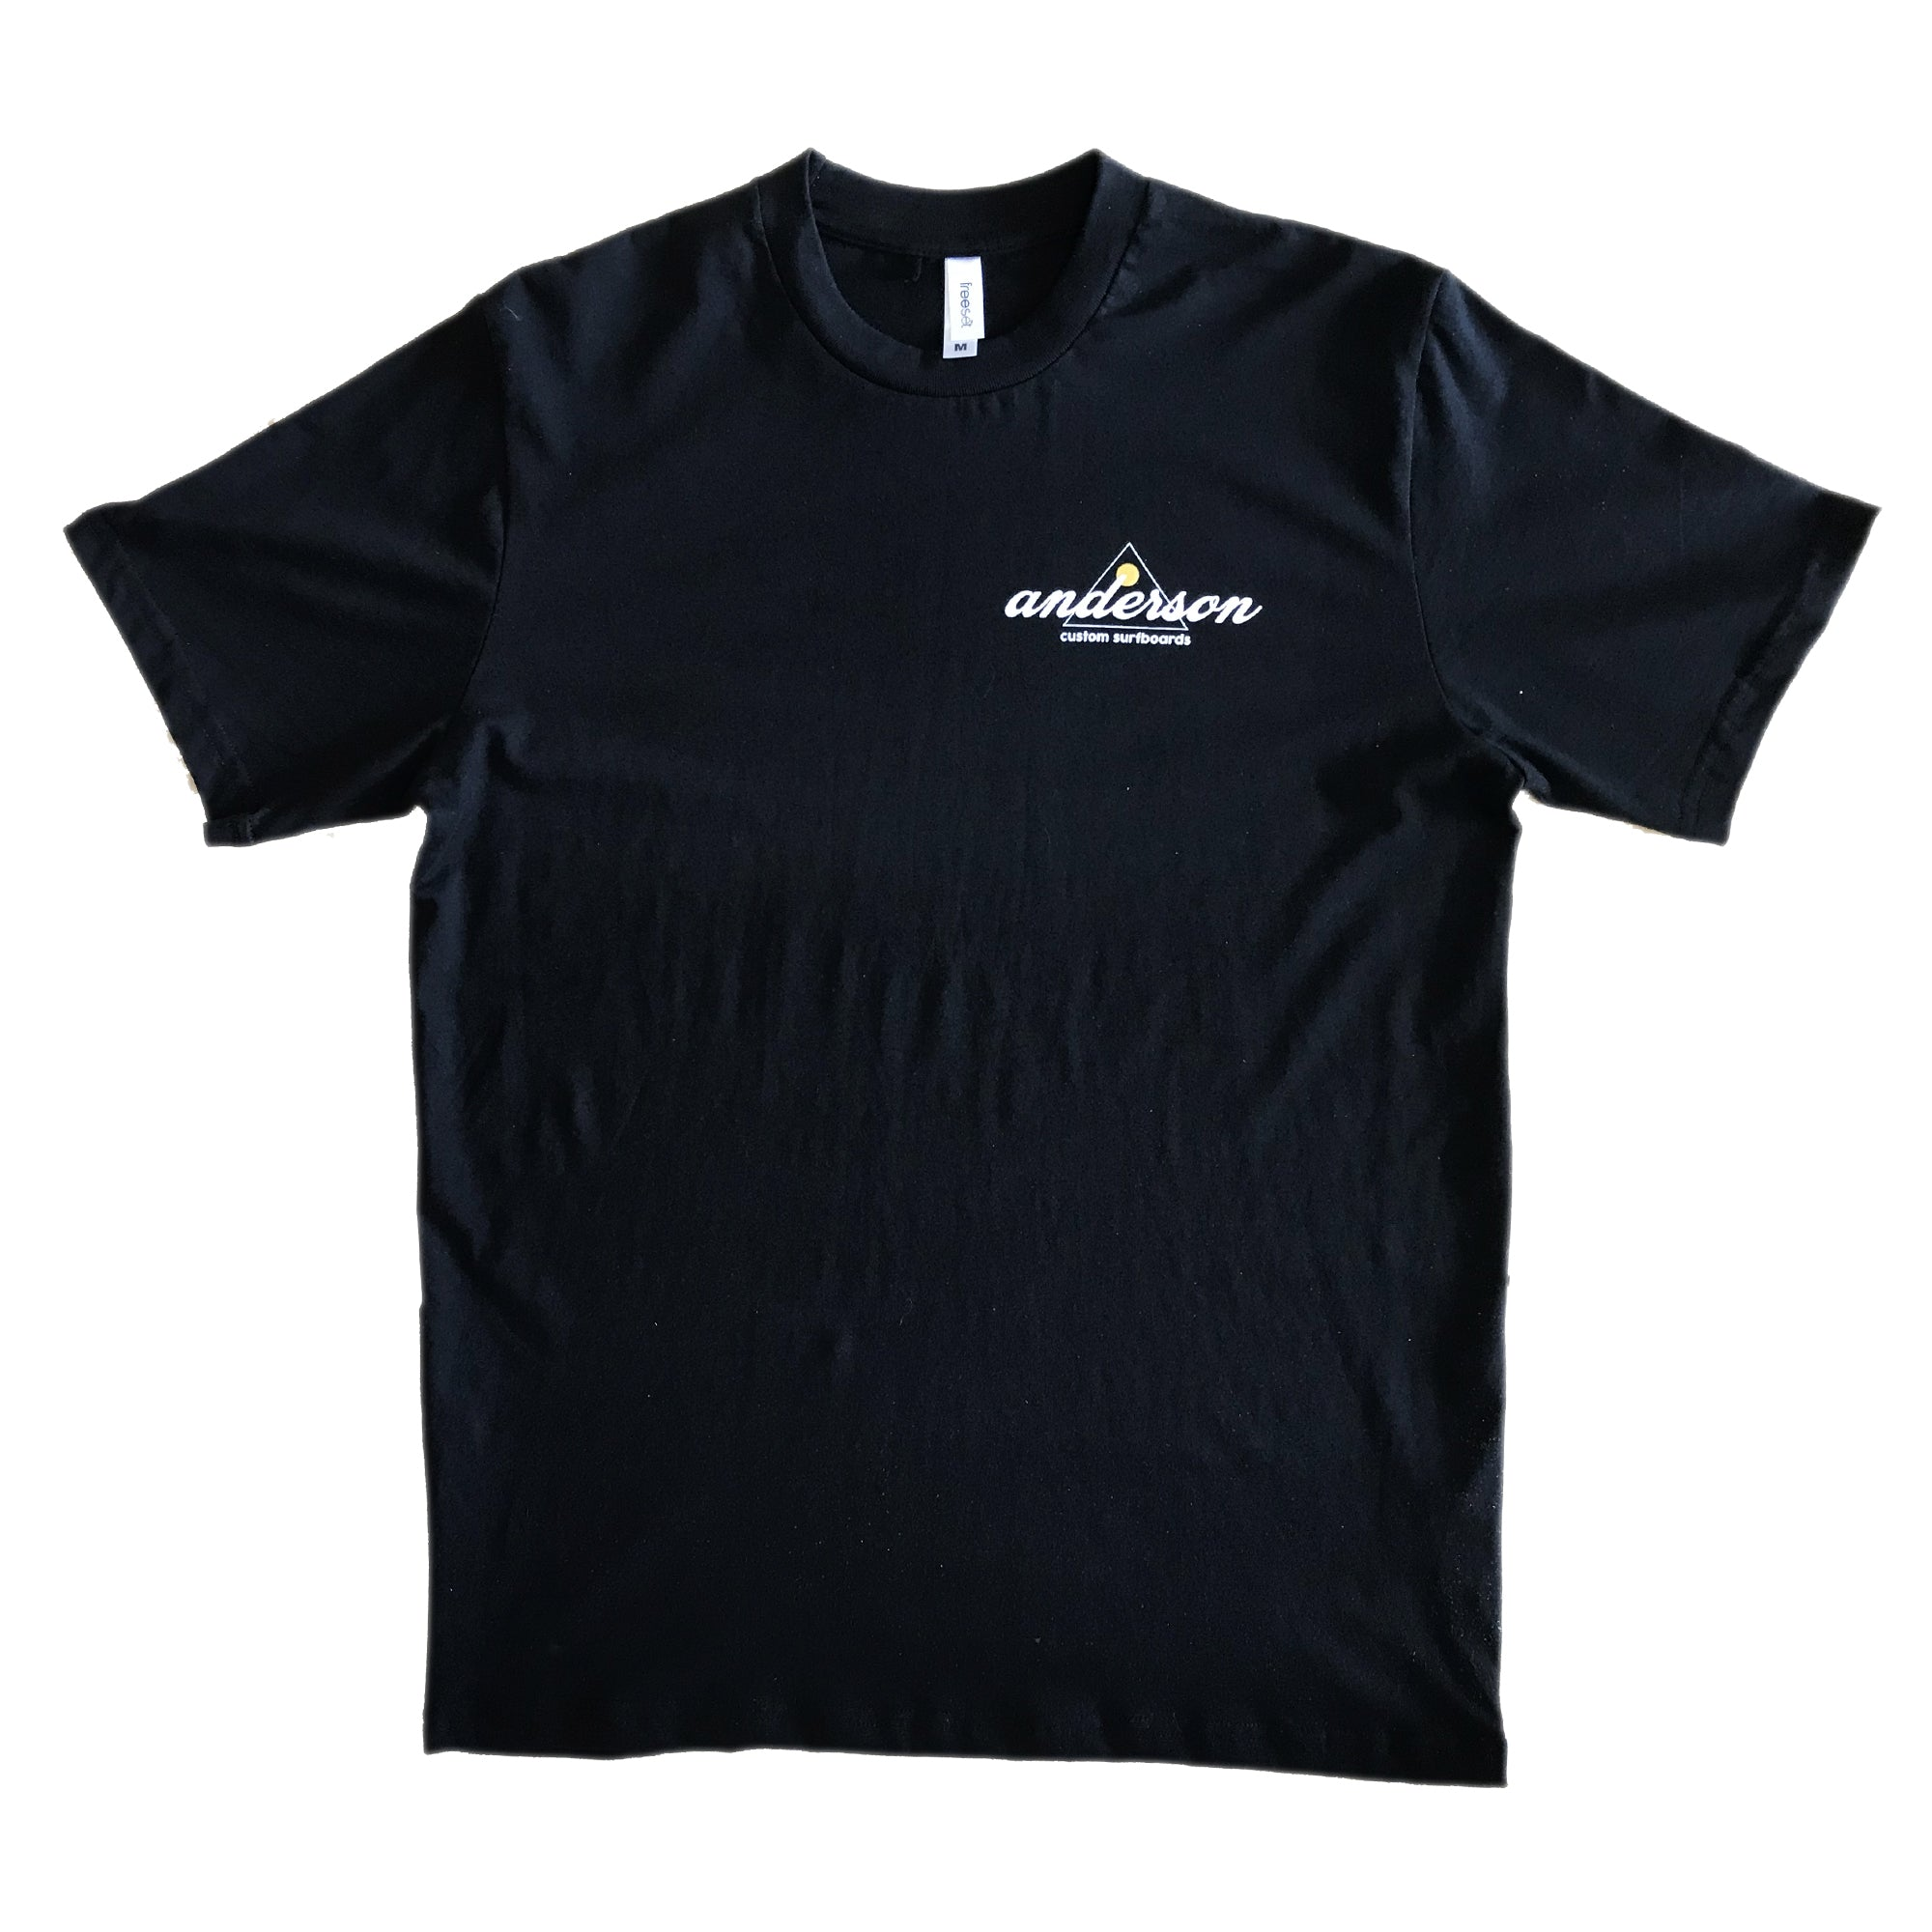 SUNSET FAIR TRADE TEE BLACK